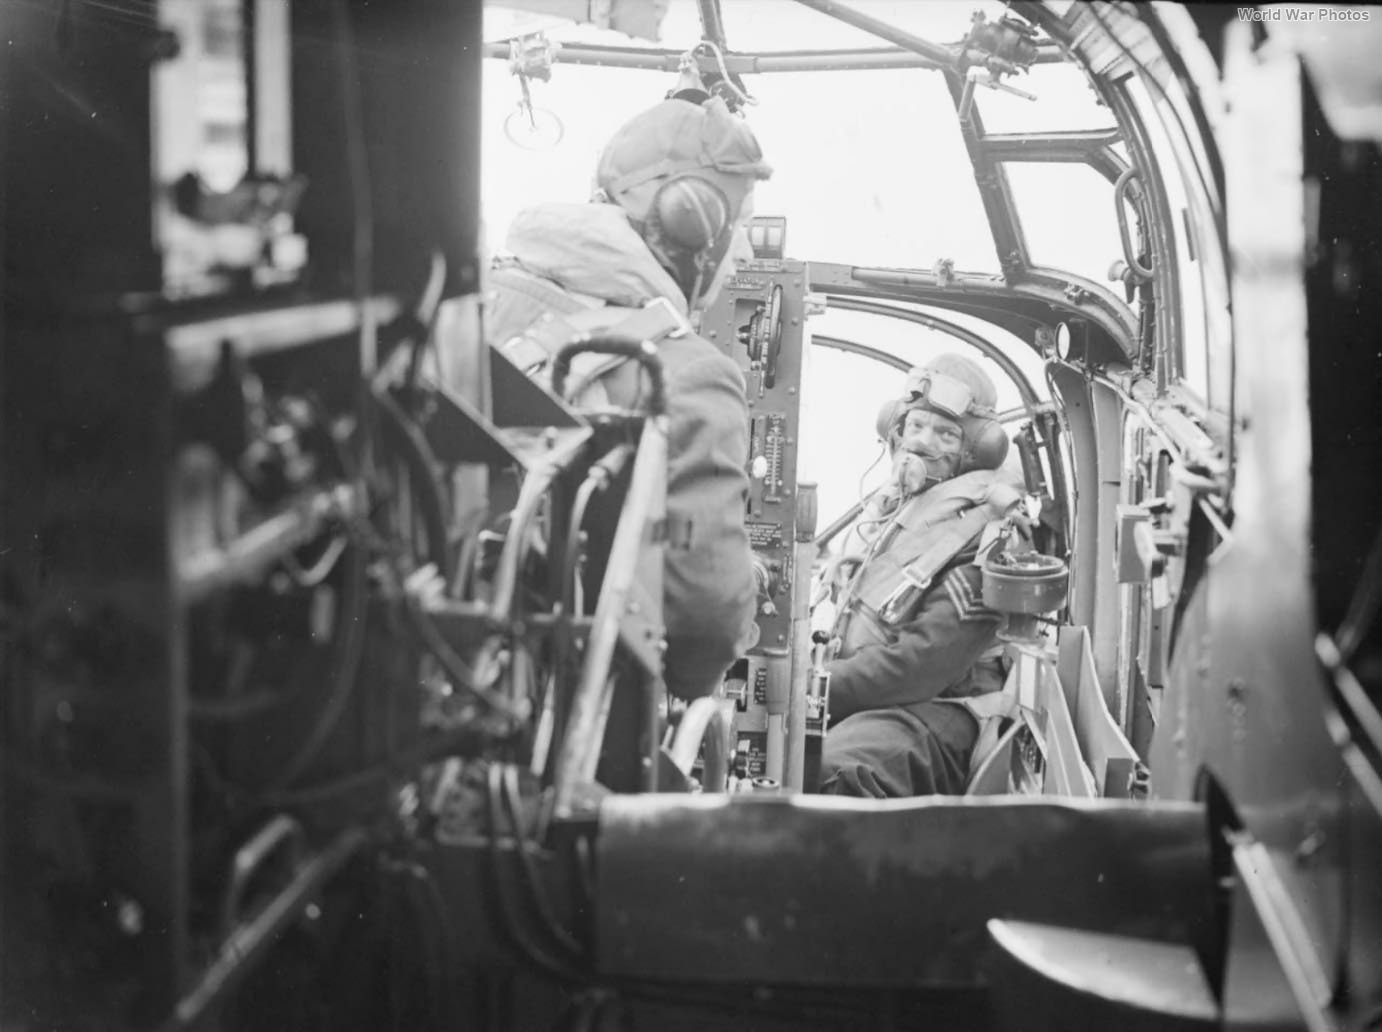 Beaufort cockpit 22 Sqn 2